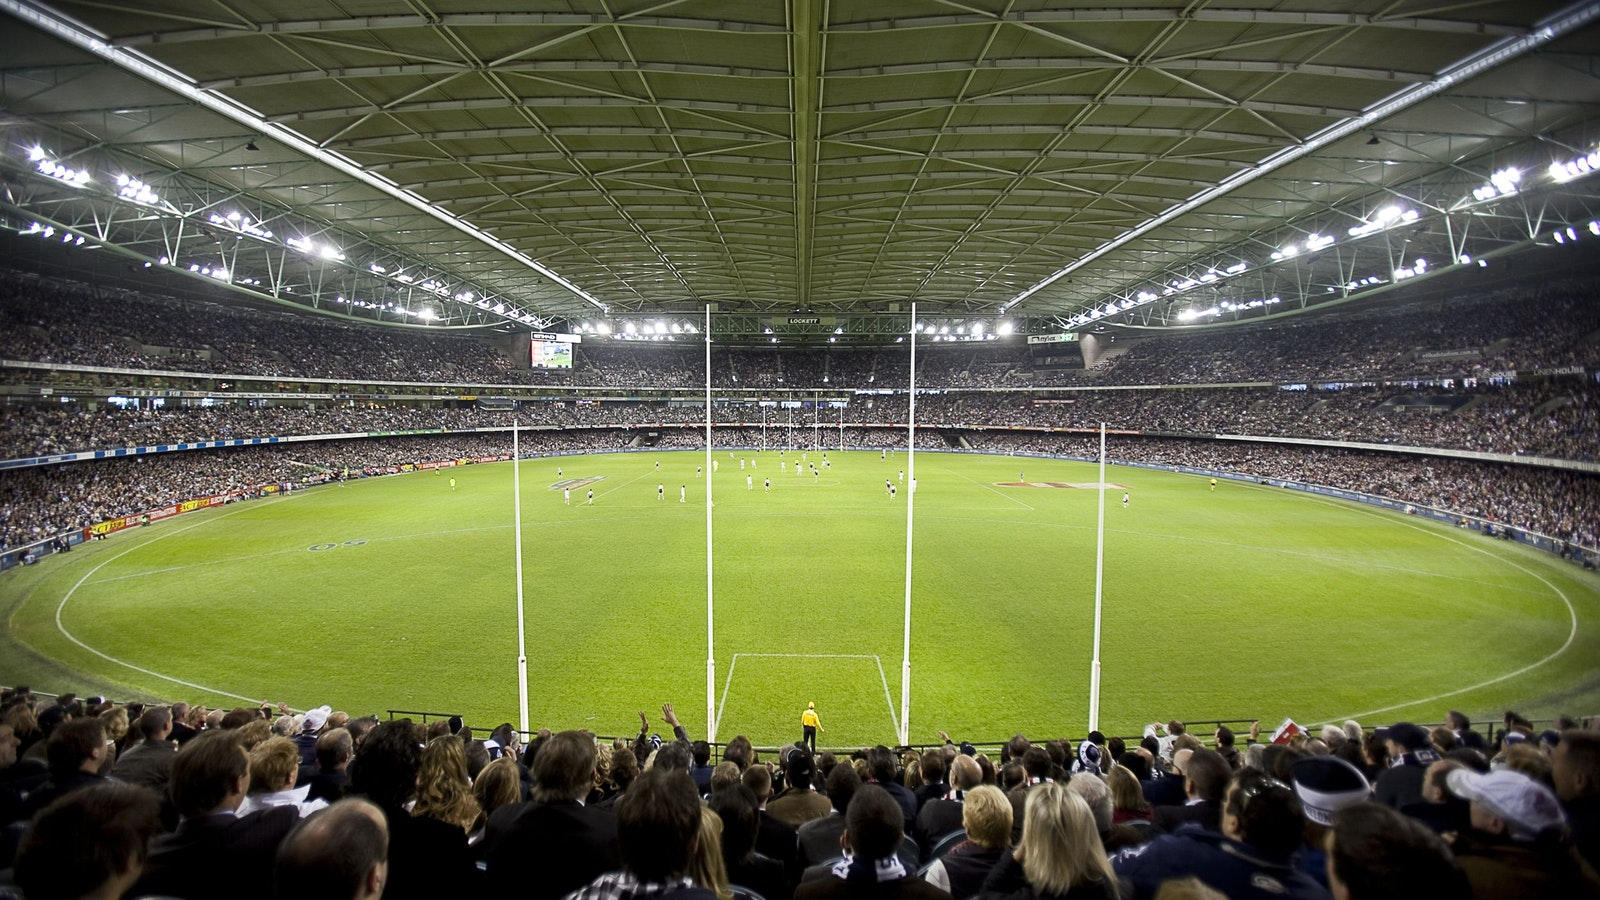 Etihad Stadium during an AFL match